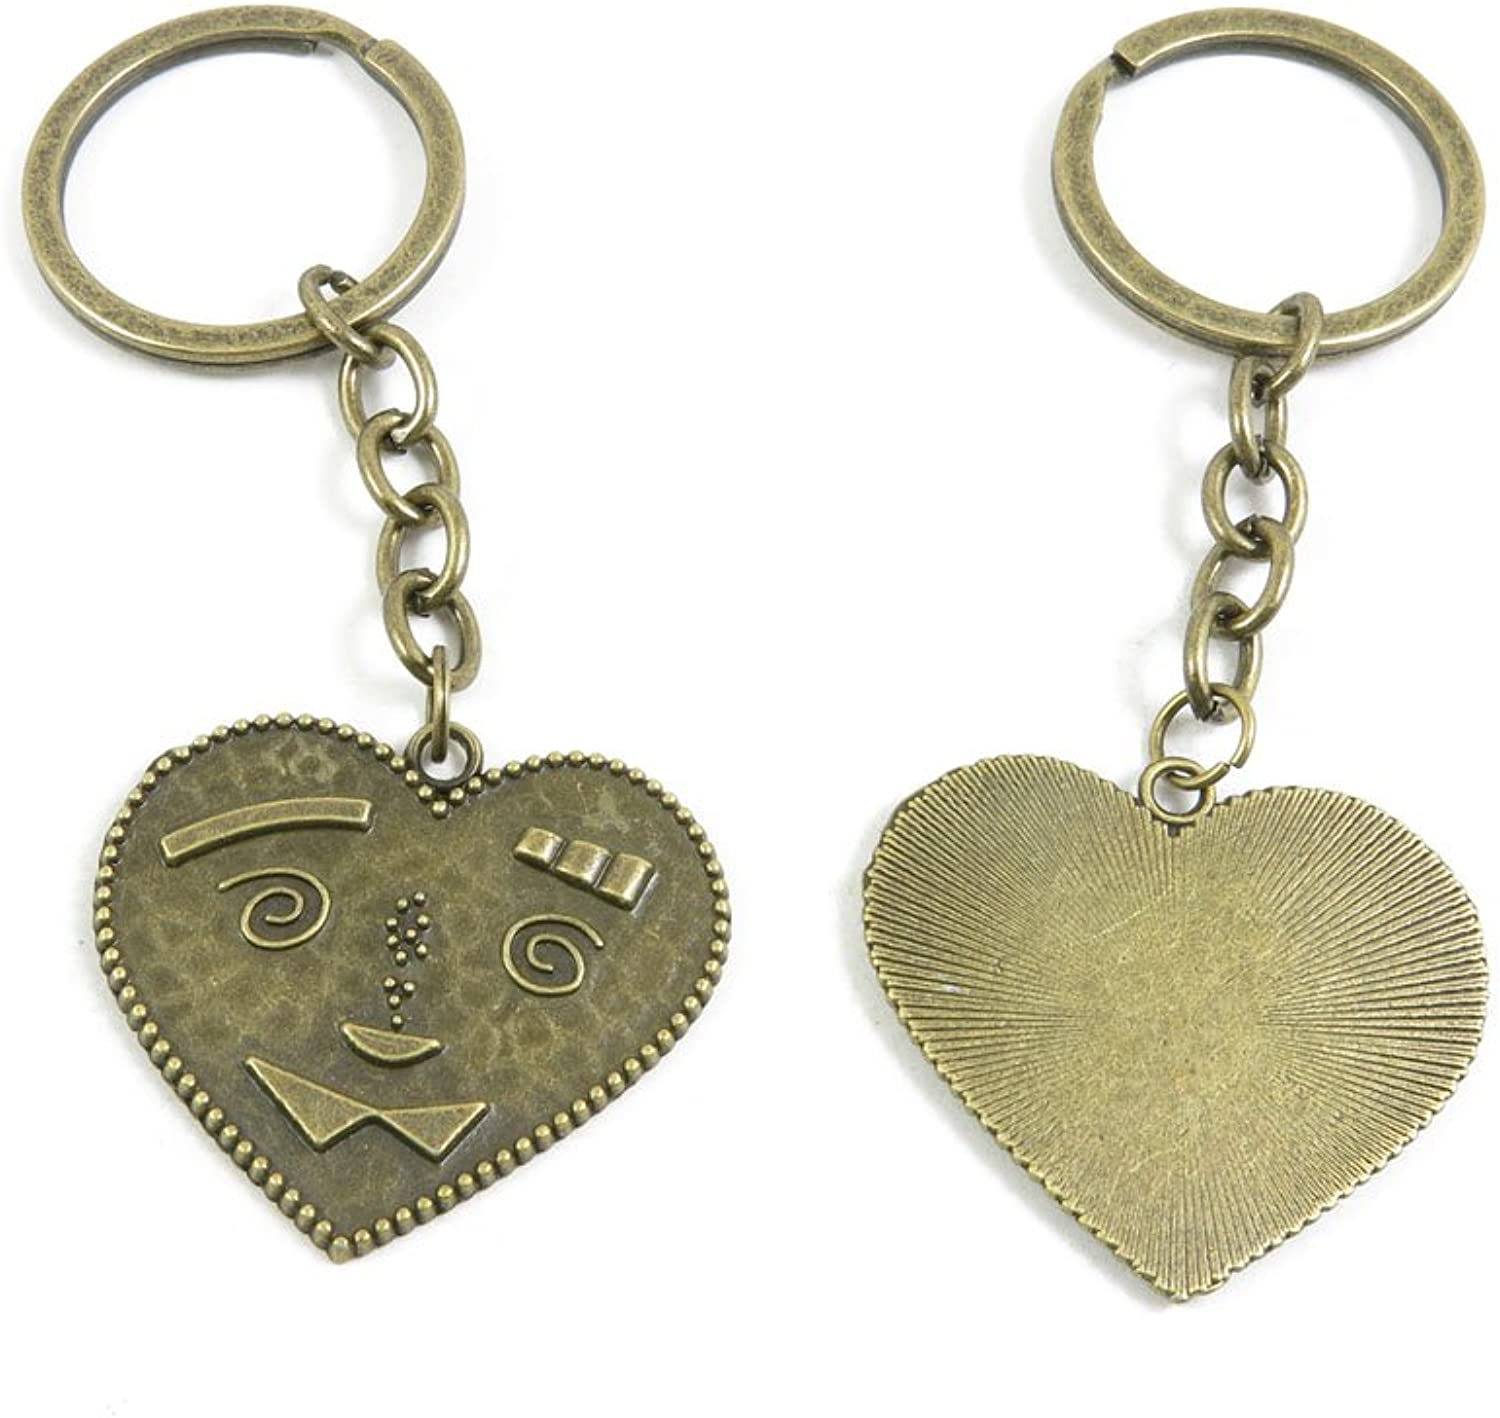 100 Pieces Fashion Jewelry Keyring Keychain Door Car Key Tag Ring Chain Supplier Supply Wholesale Bulk Lots F6HP3 Cartoon Heart Face